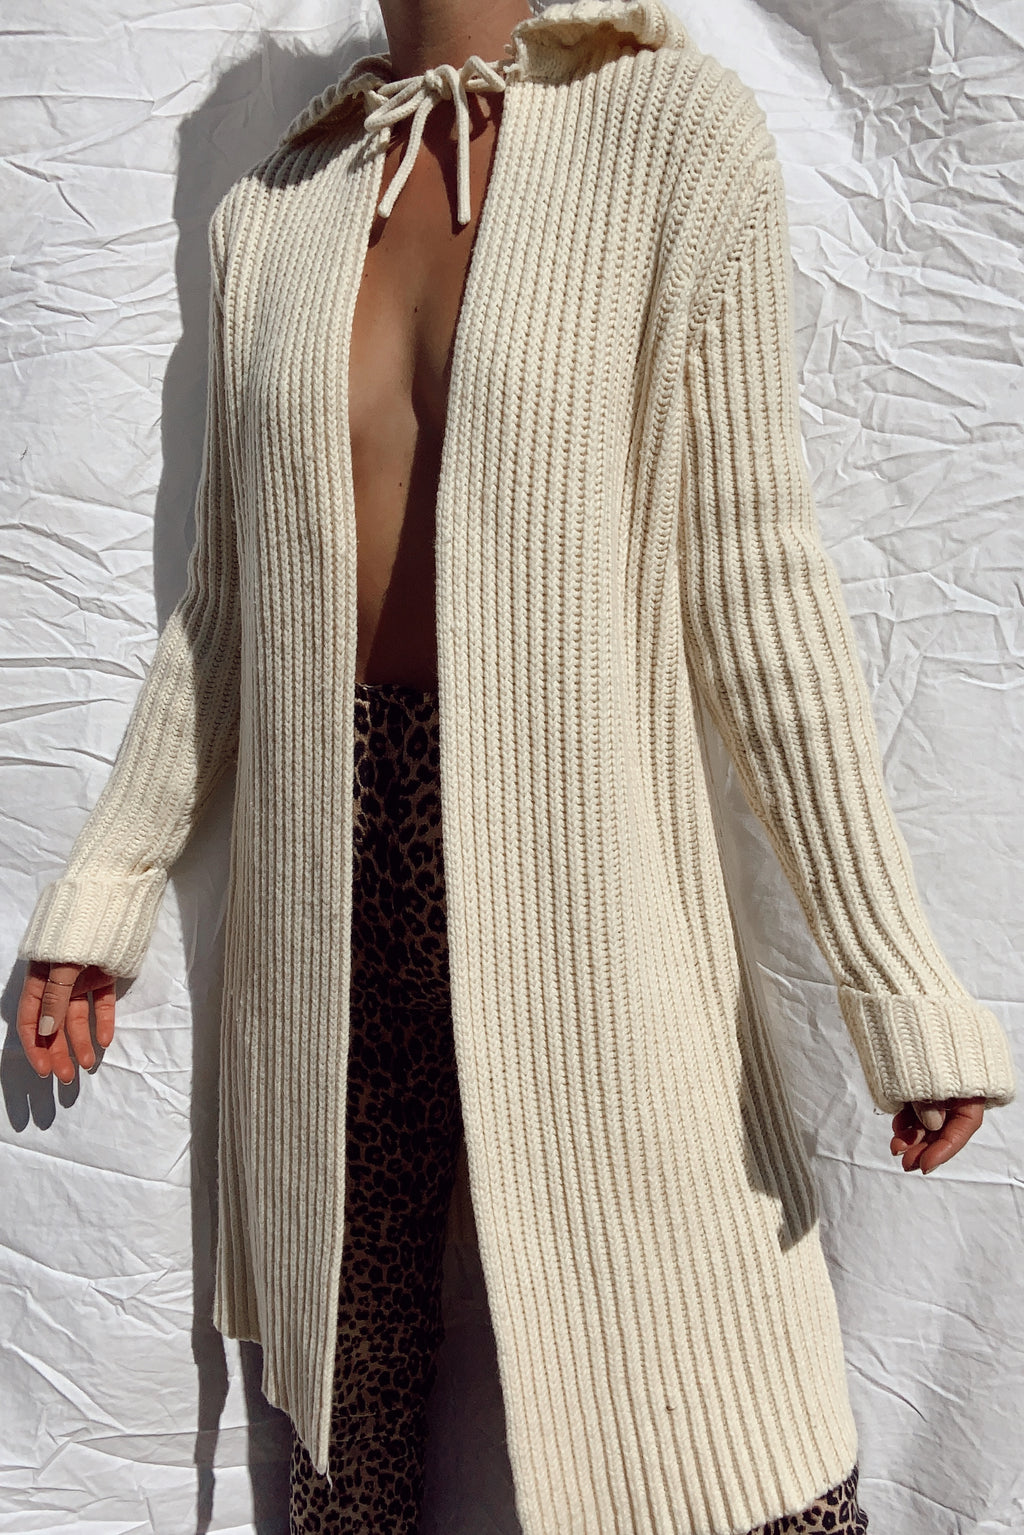 Hooded Wool Cardigan (S-M)